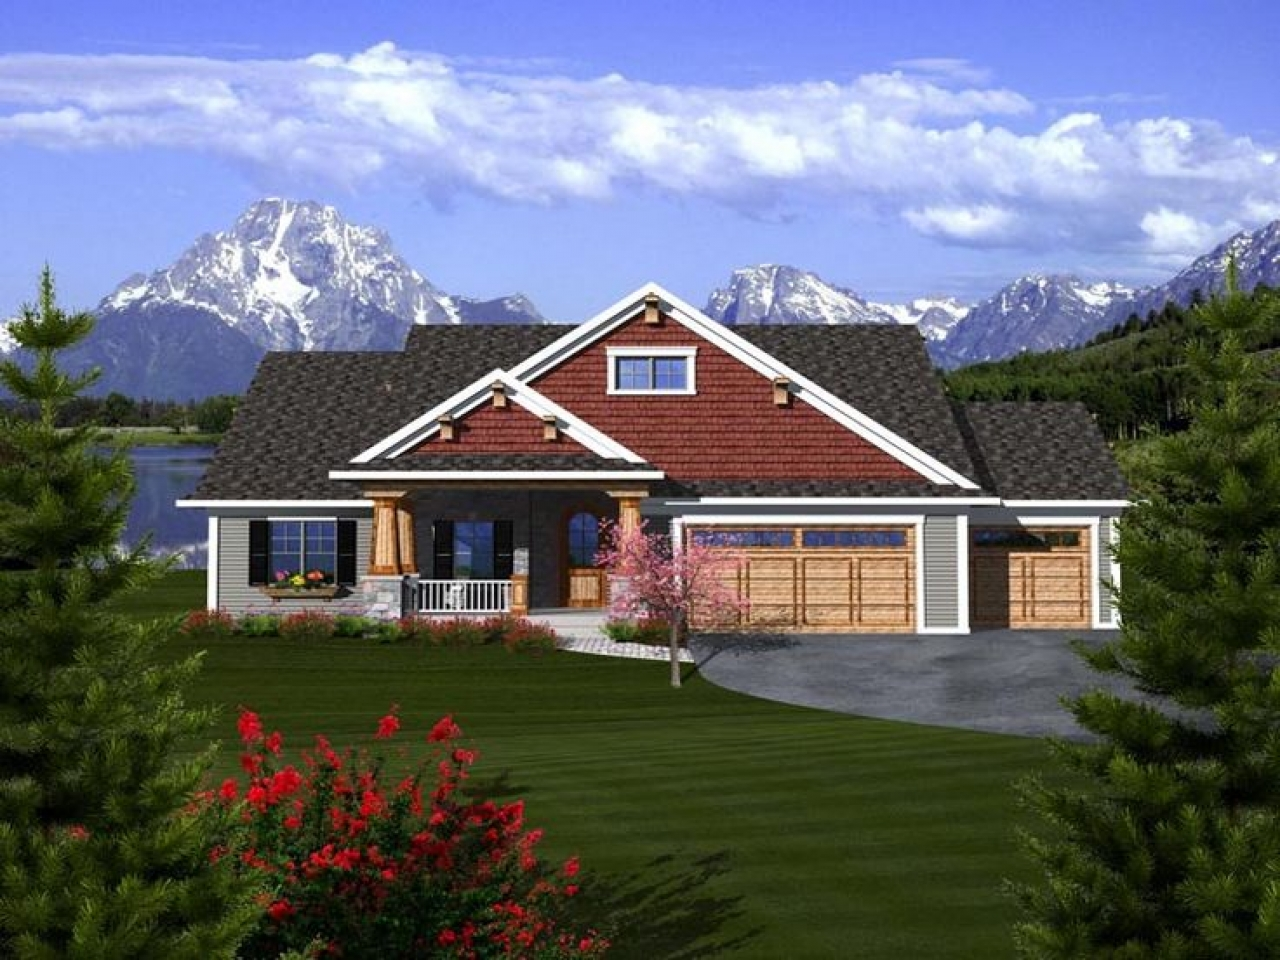 Craftsman ranch house plans with 3 car garage rustic for 8 car garage house plans